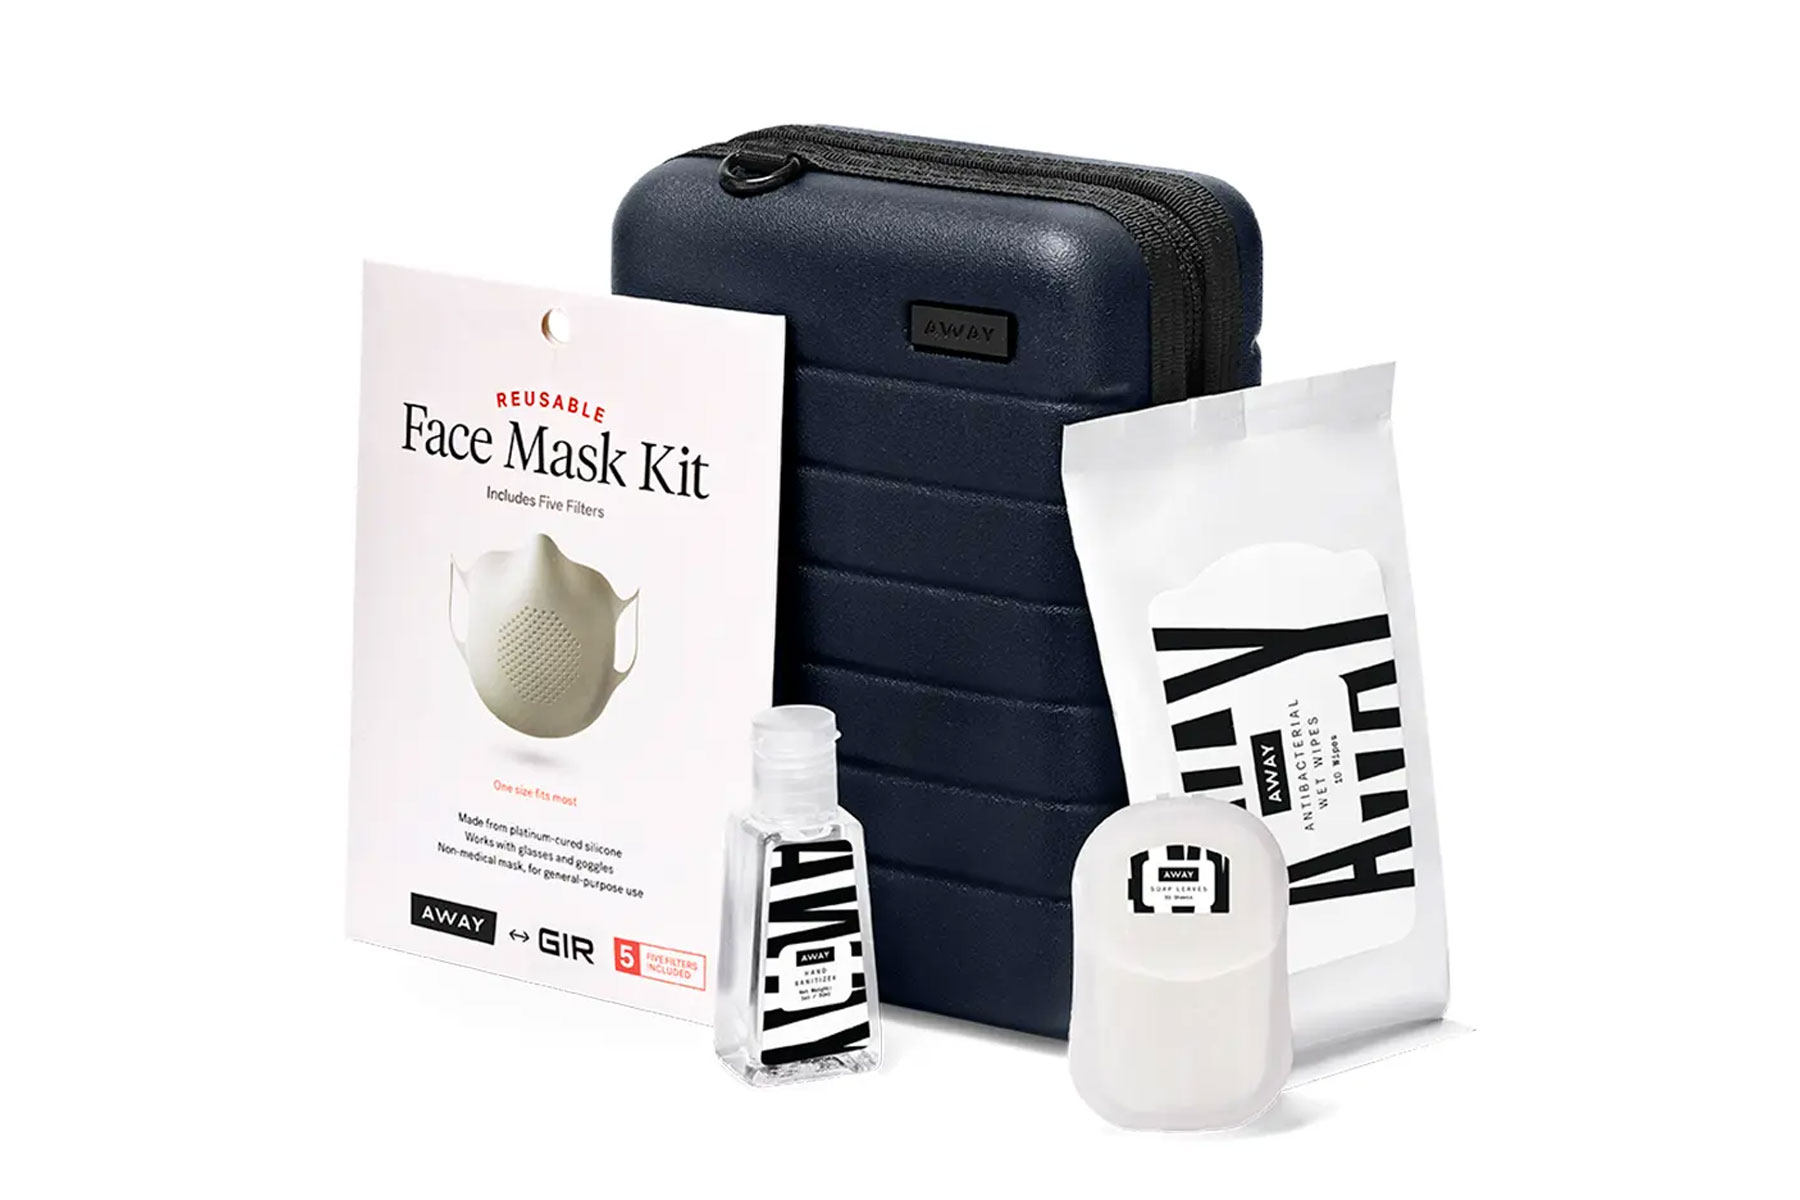 Mini suitcase with skincare products and protective face mask